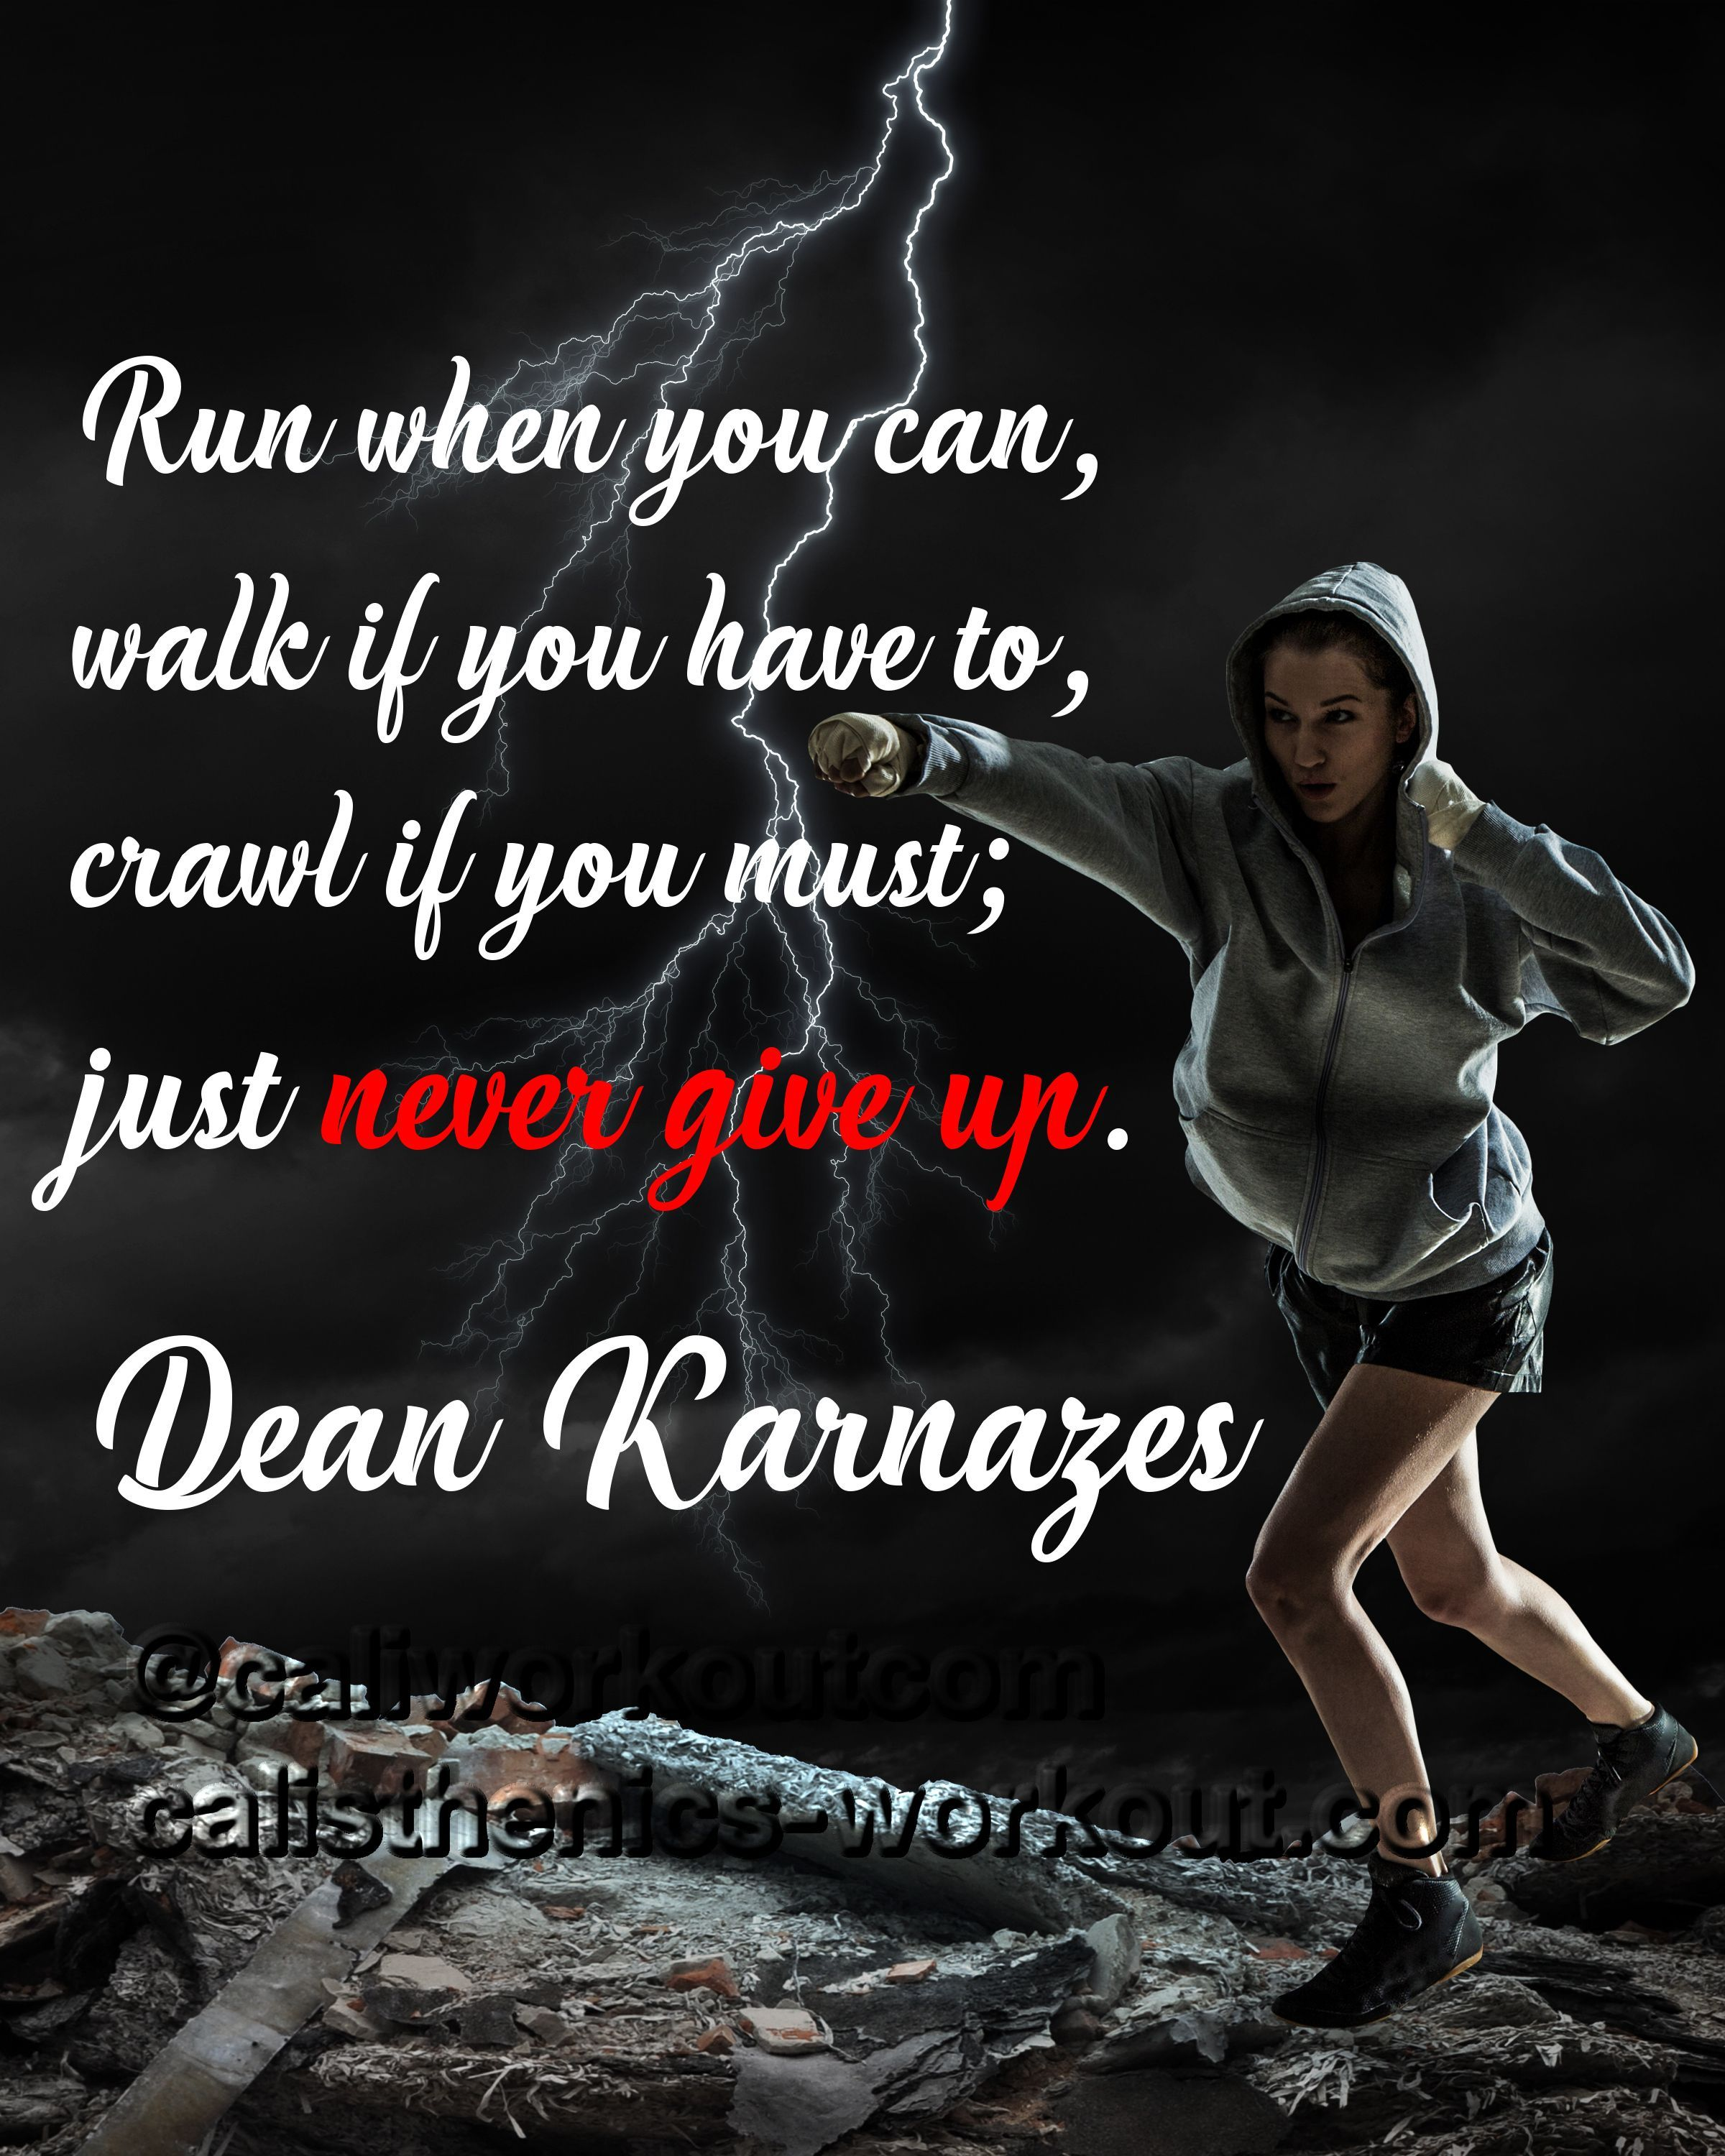 run when you can walk if you have to crawl if you must just never